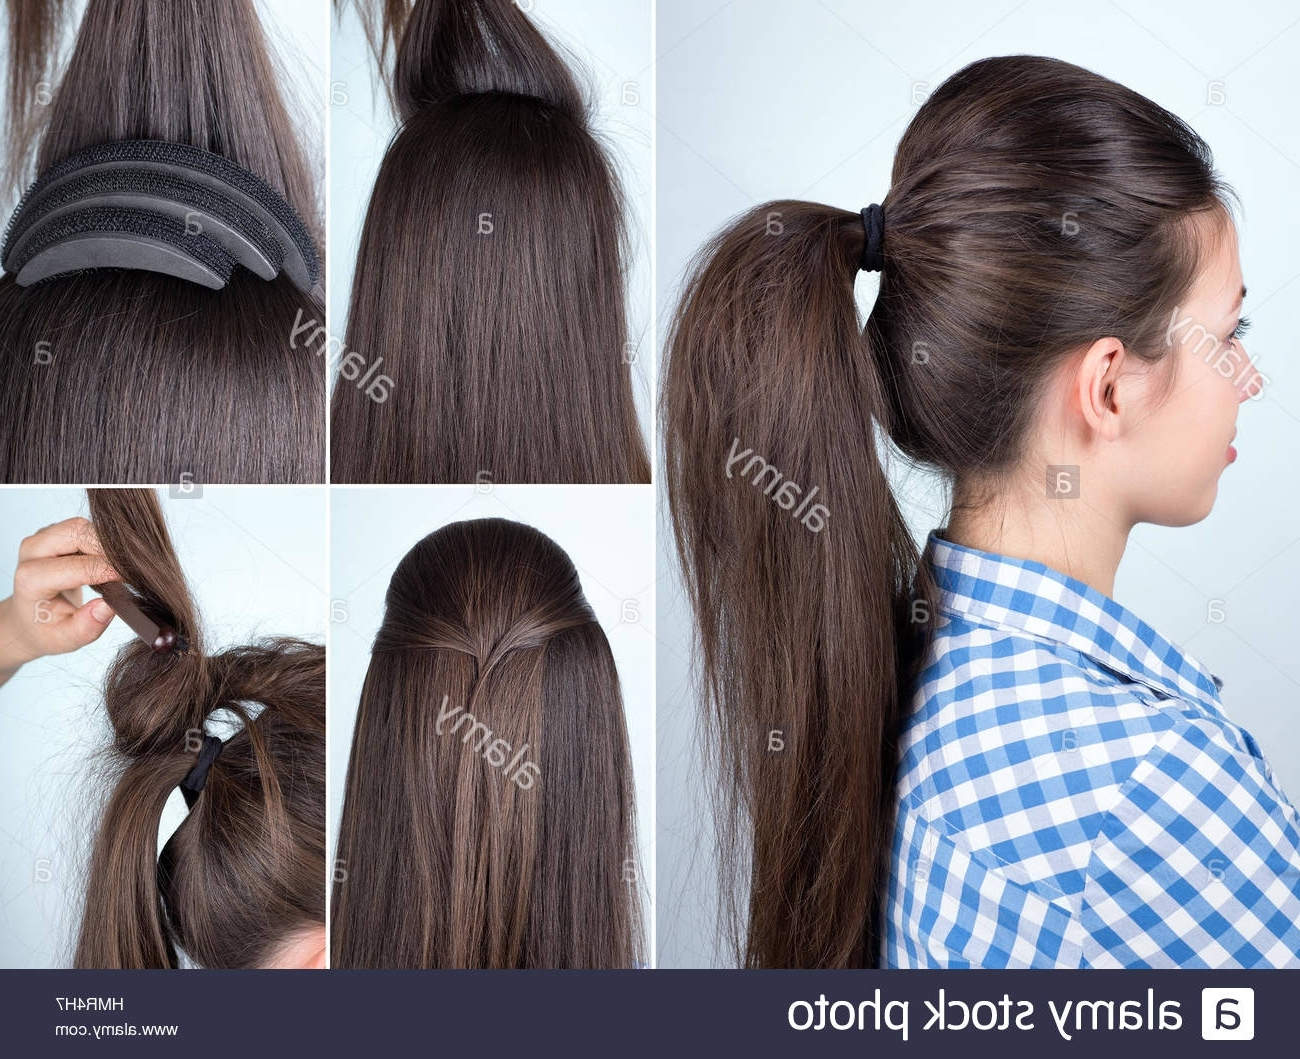 Current Black Ponytail Hairstyles With A Bouffant Intended For Bouffant Hairstyle Stock Photos & Bouffant Hairstyle Stock Images (View 11 of 20)